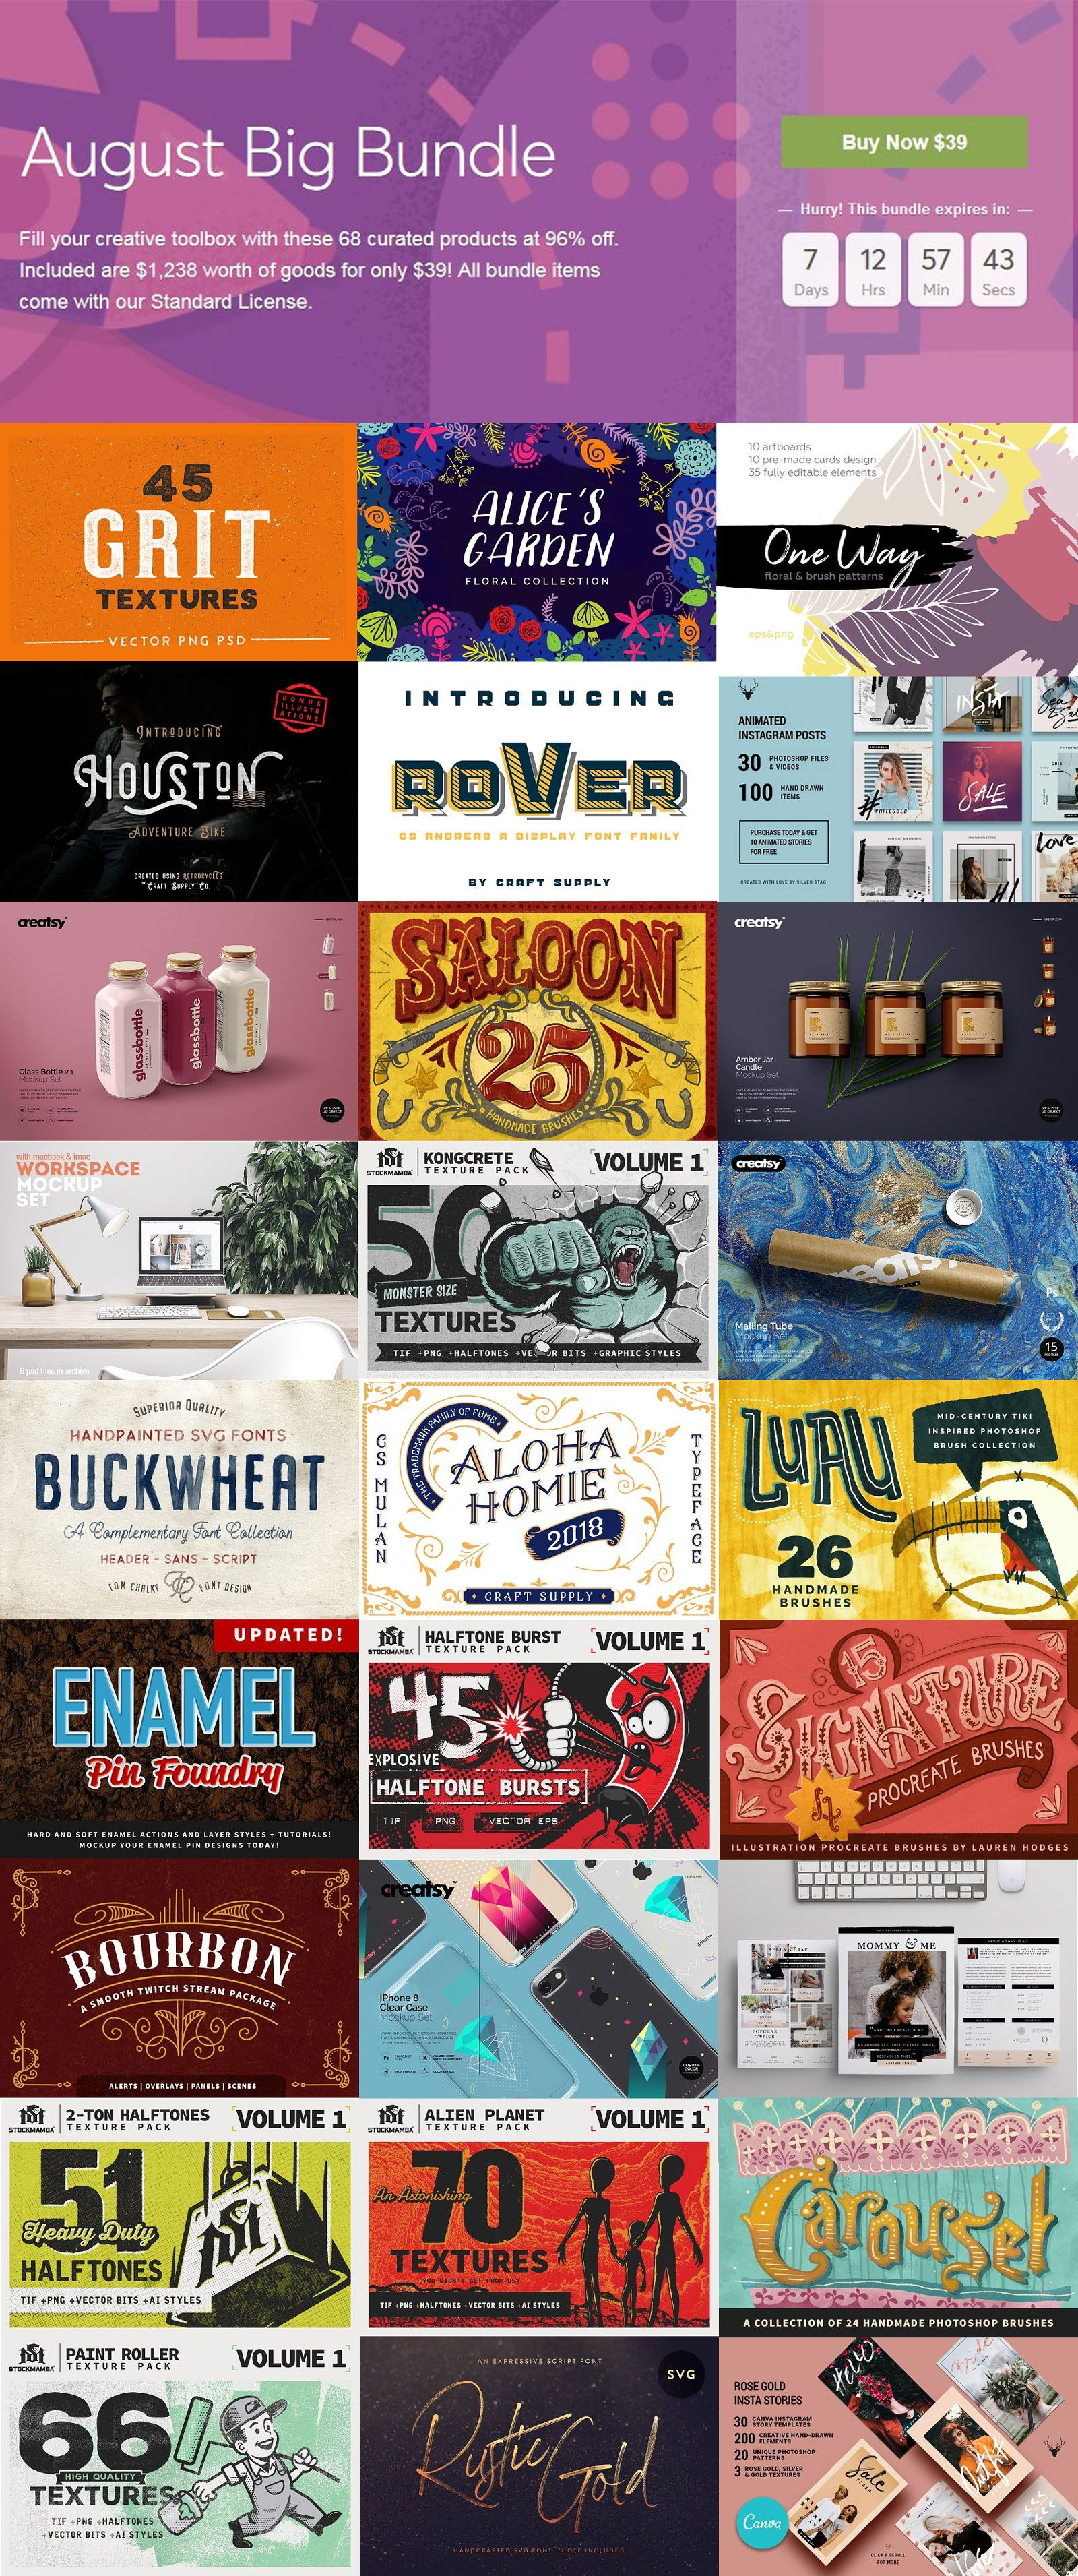 Freebie + Get 68 Top Design Products worth 1238+ for